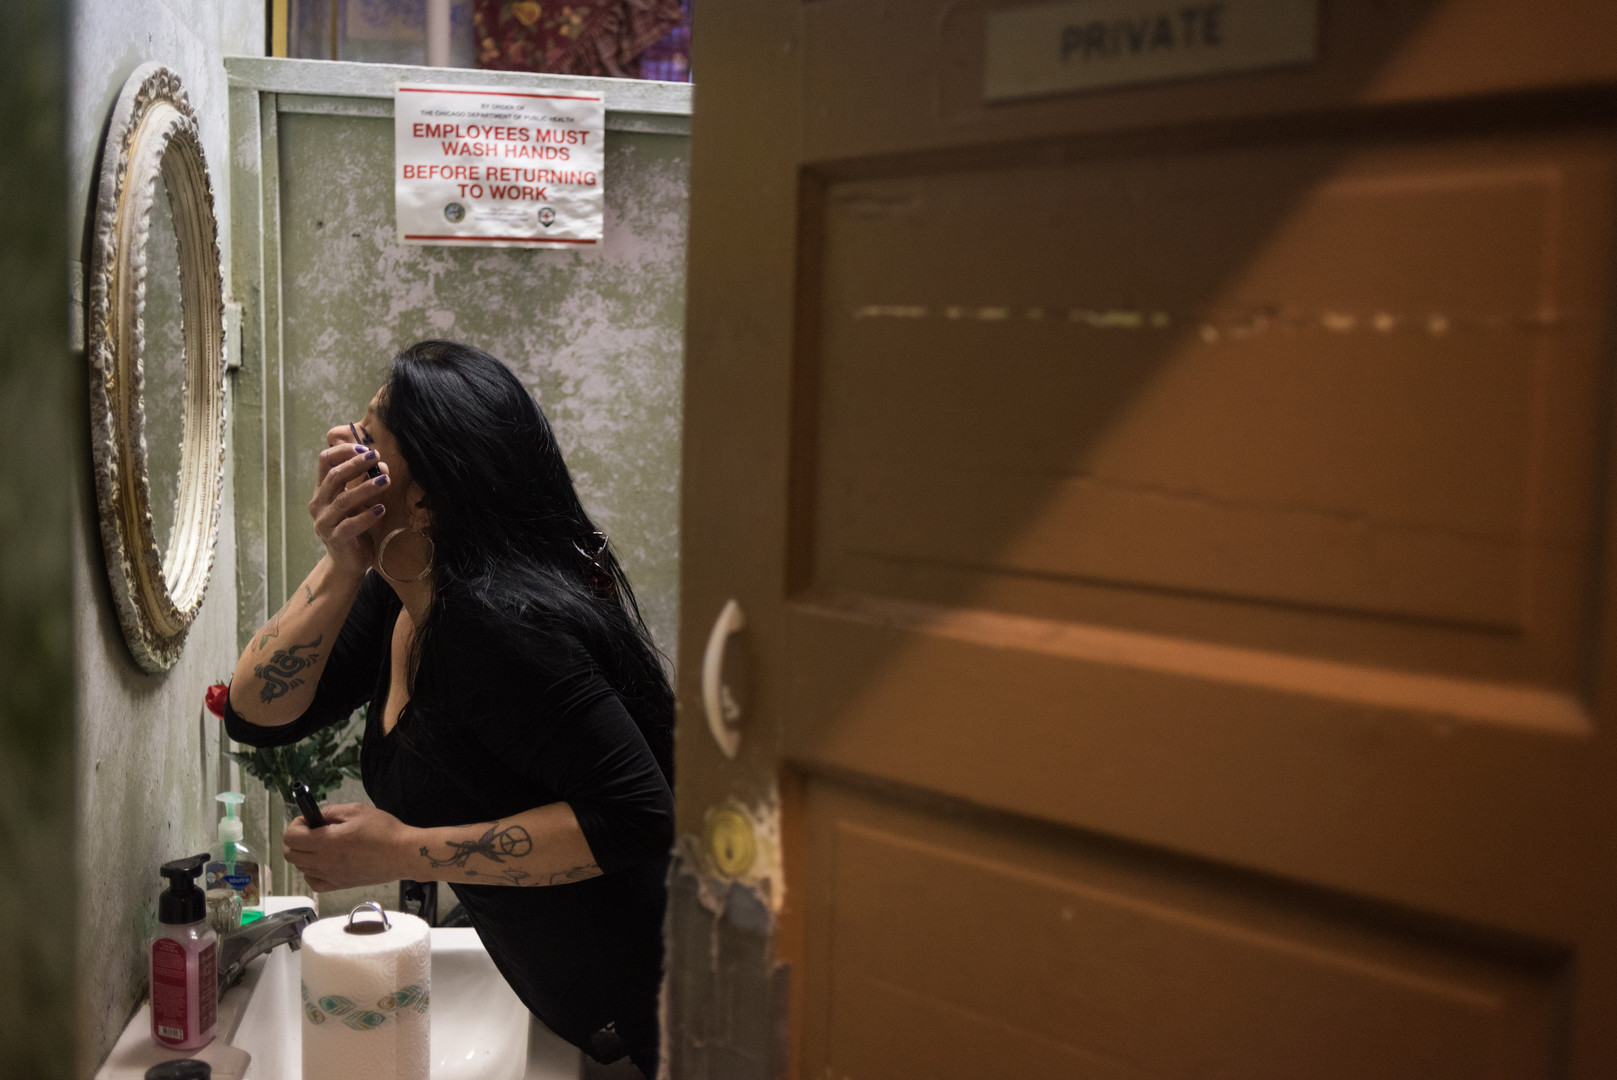 6:11 a.m. Vickie does her makeup in the staff's private bathroom before starting her morning shift with Candice. The two are sister-in-laws.